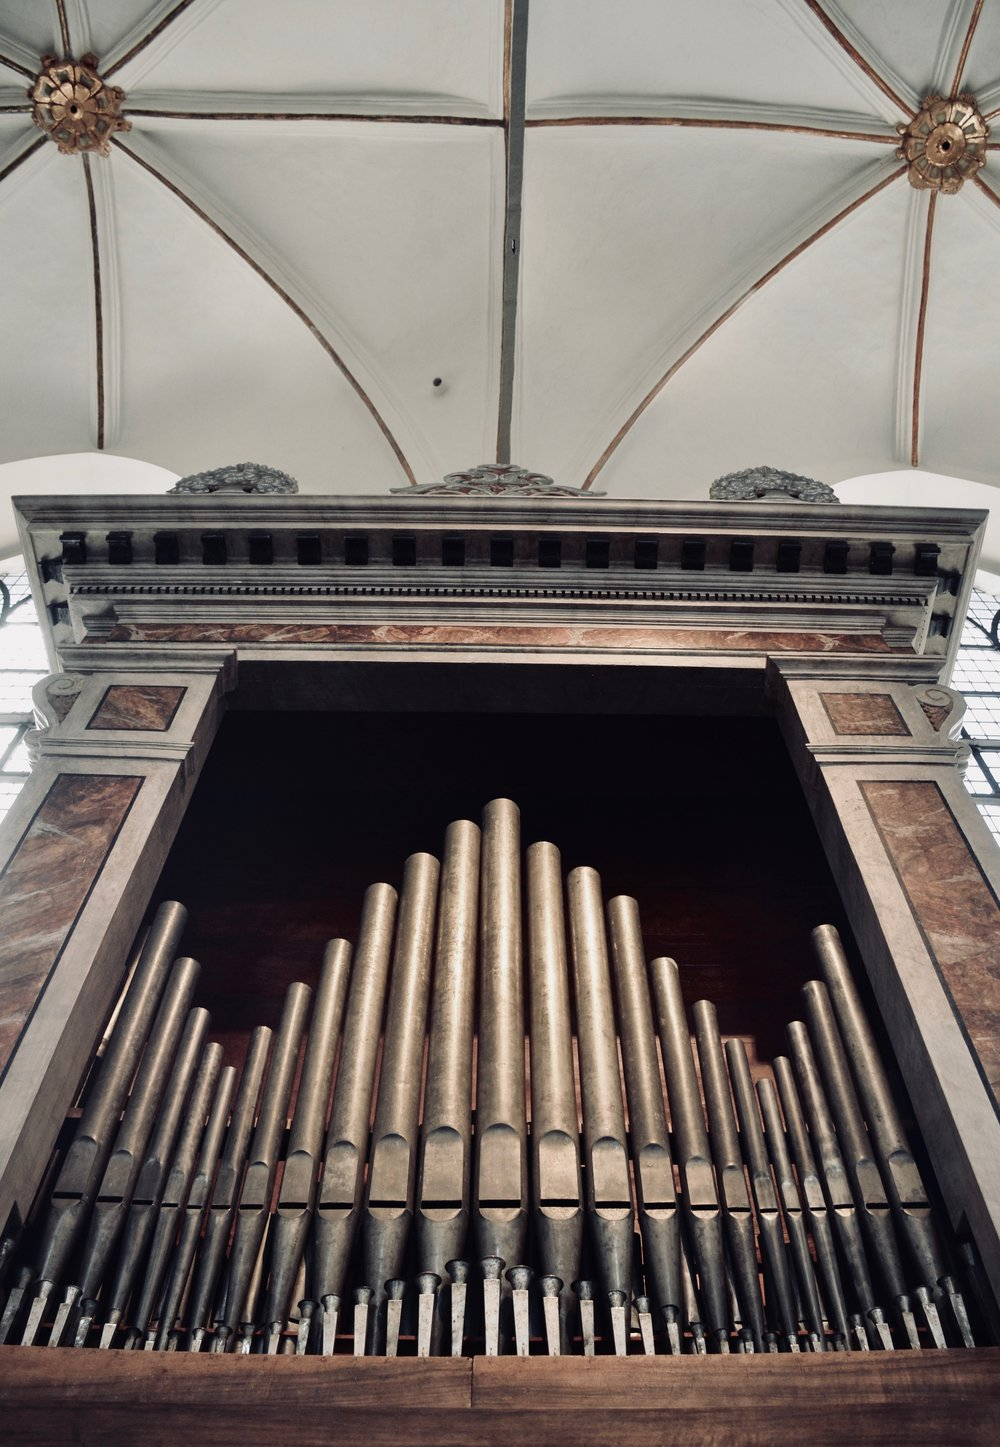 The Italian baroque organ in Trinitatis Kirke, Copenhagen.